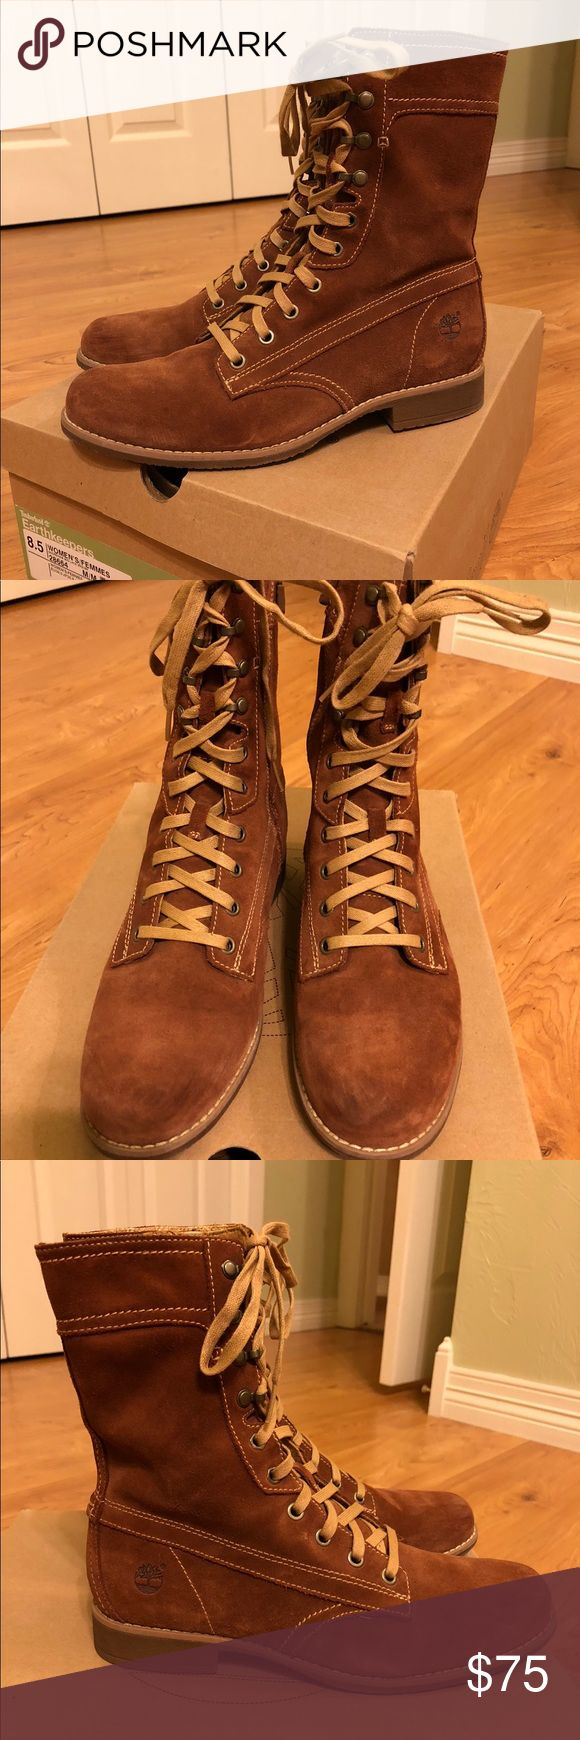 Timberland Earthkeepers suede boots size 8.5 Beautiful rustic suede boots have a lace up entry or a side zip entry. Like new condition worn only two times. Heel is less than one inch. Extremely comfortable. Timberland Shoes Ankle Boots & Booties